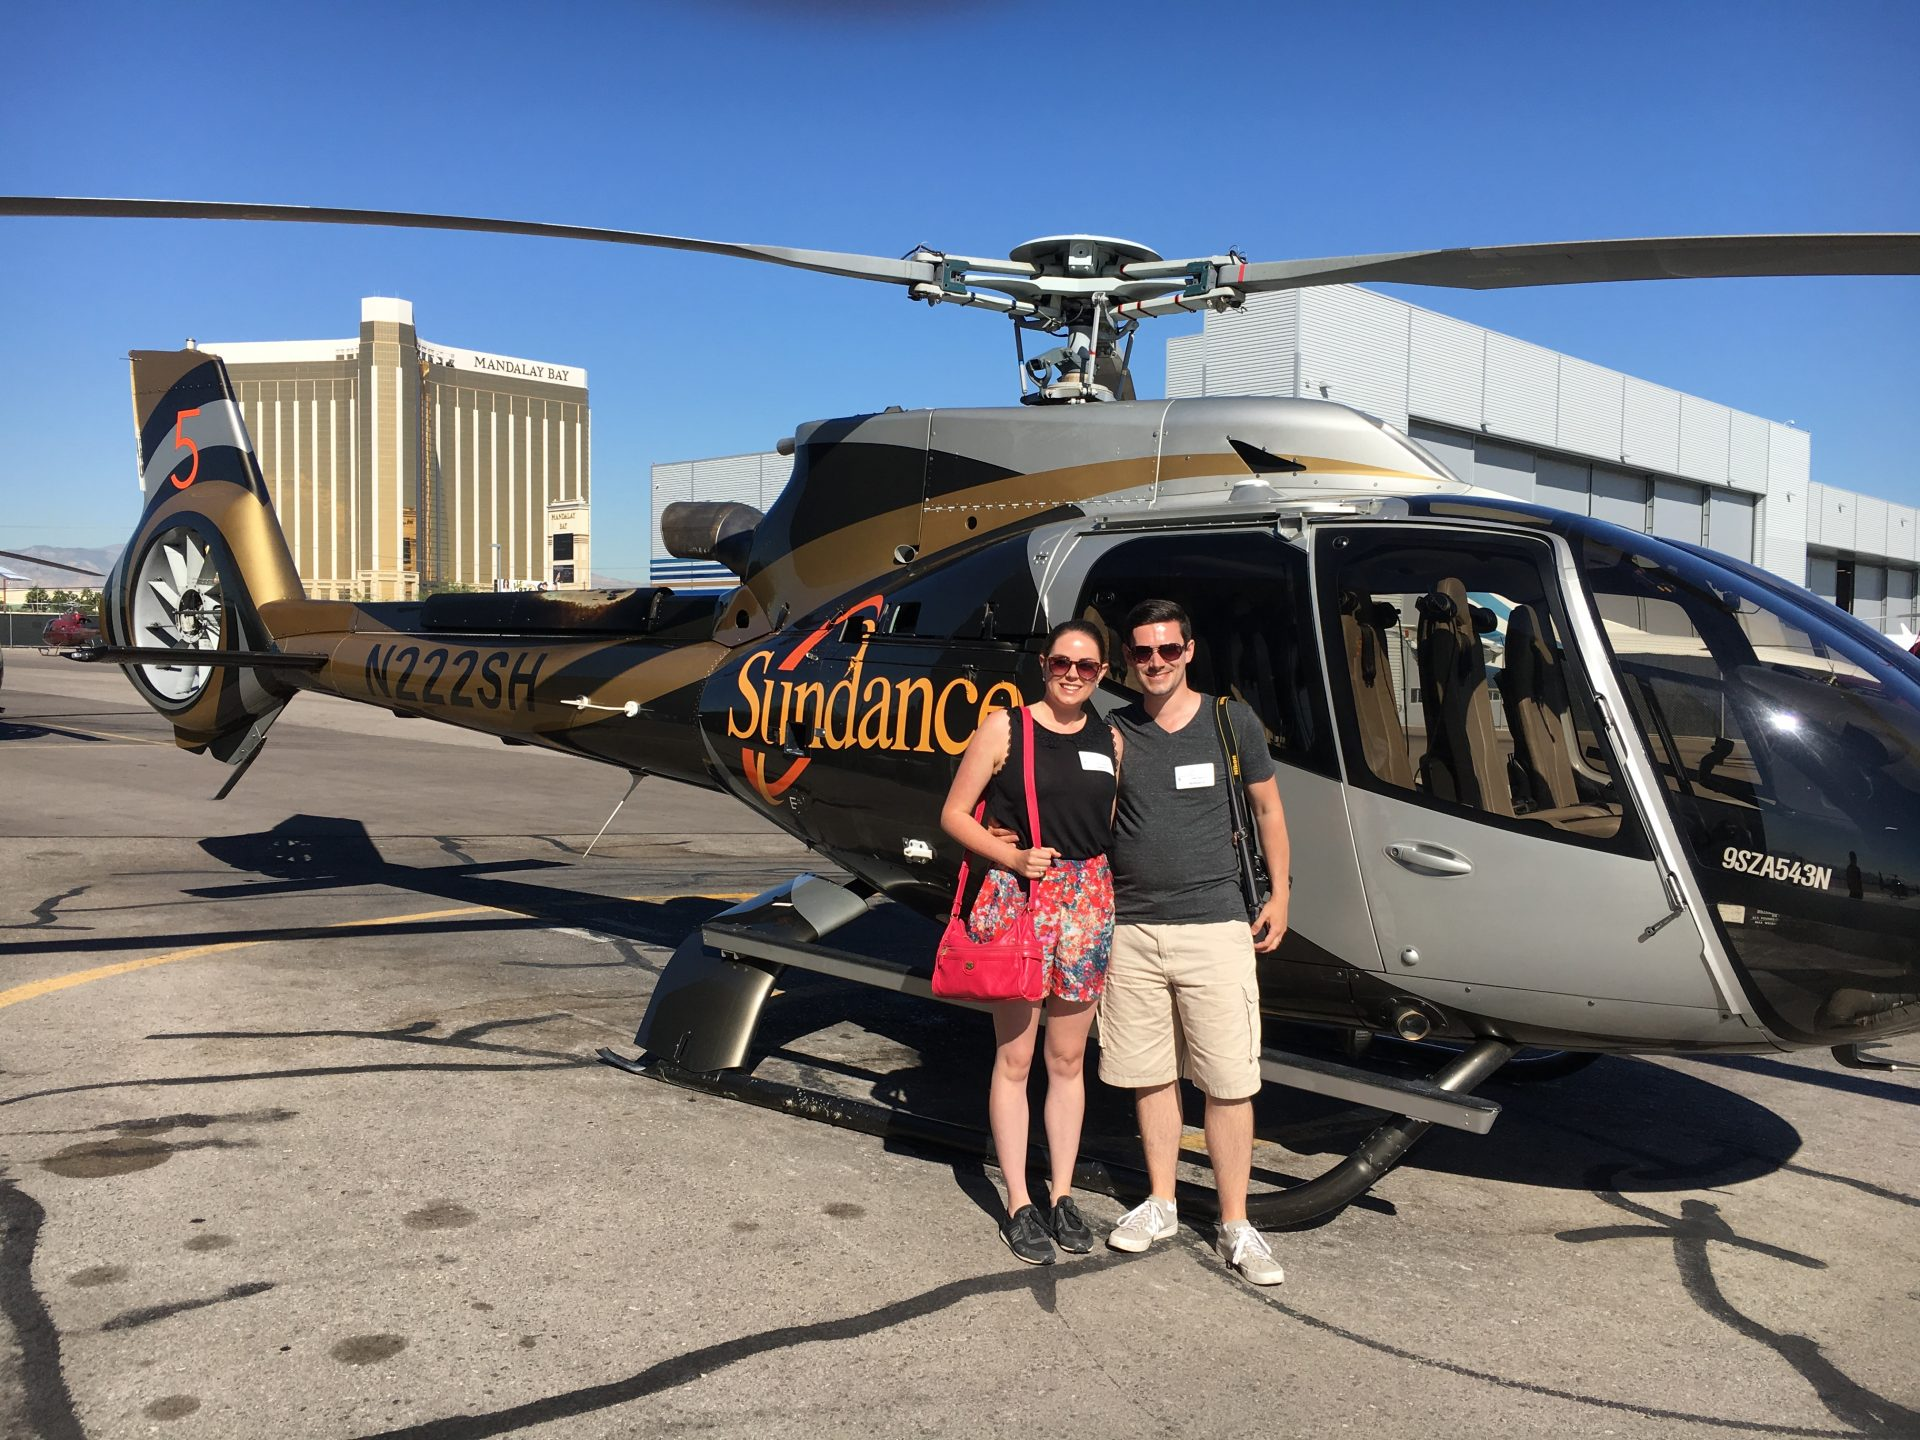 Sundance Helicopter tour of the Grand Canyon